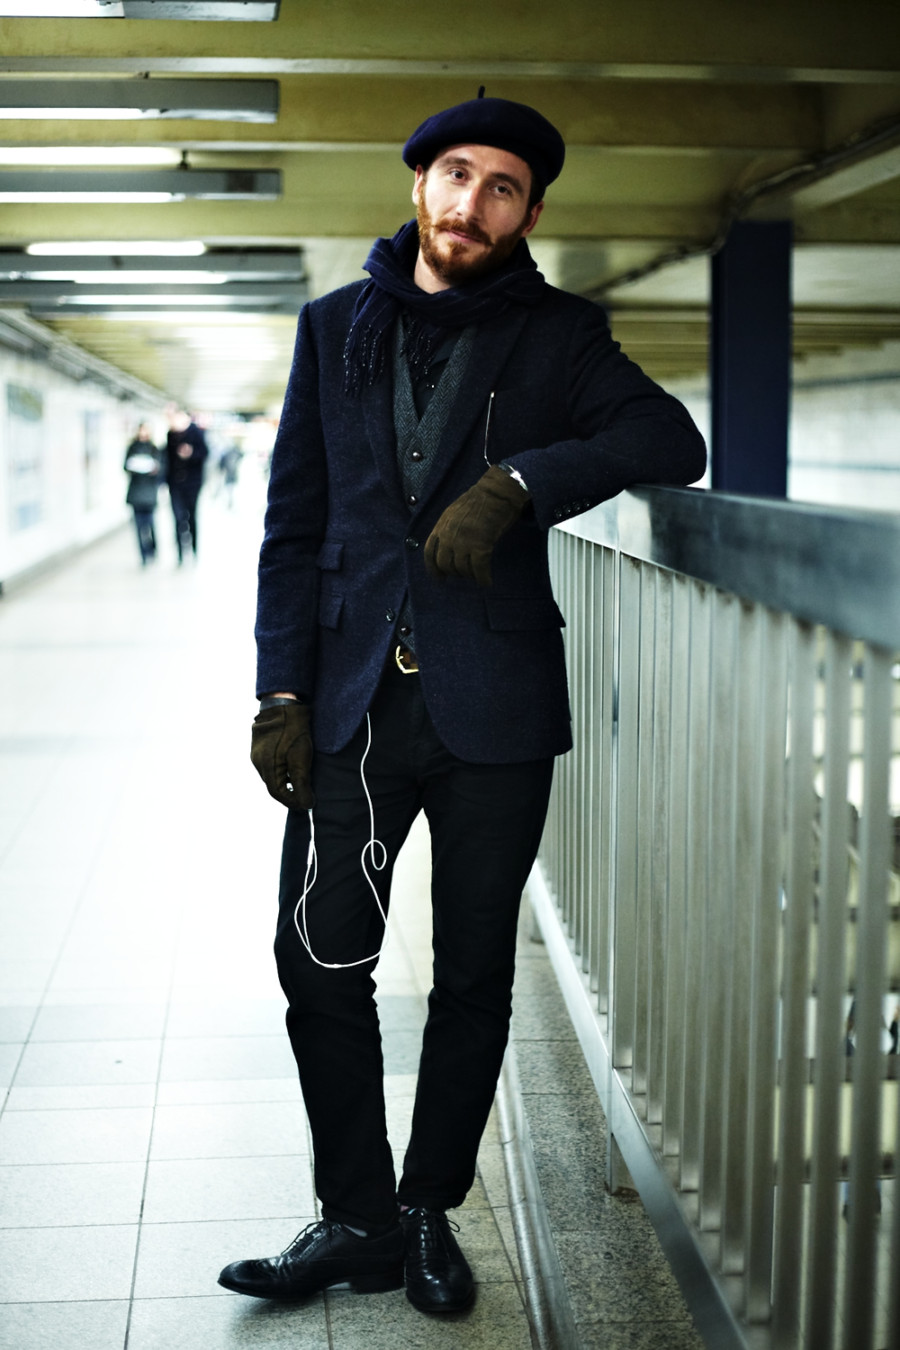 引用:http://street-fashion-snap.com/post/37586172886/dapprly-a-little-french-touch-to-a-layered